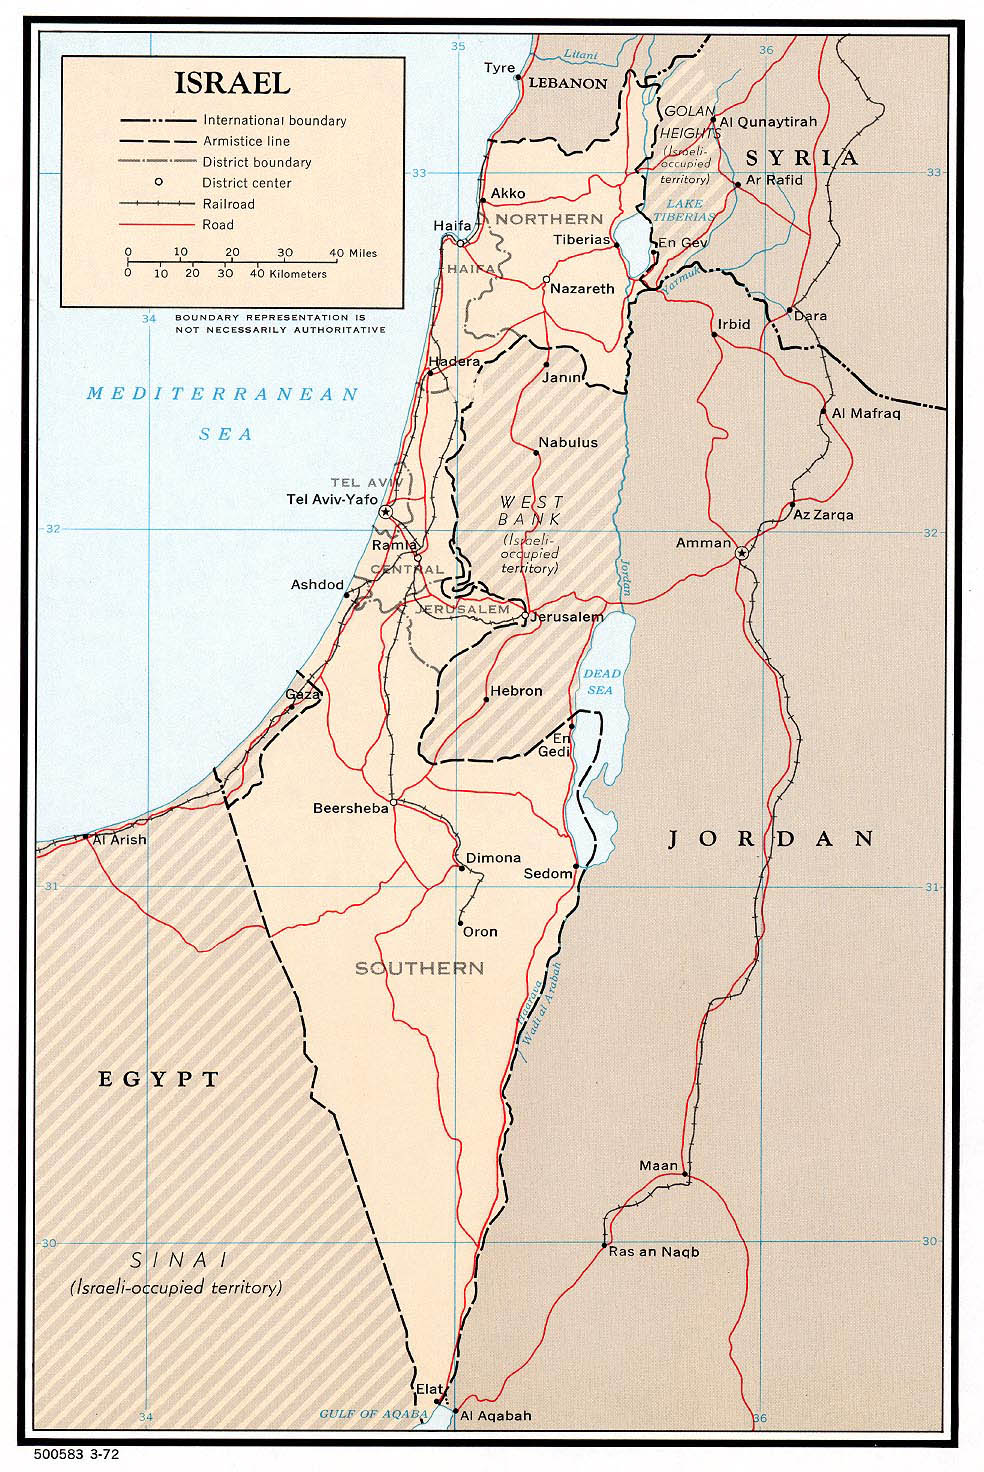 Large detailed political and administrative map of Israel 1972